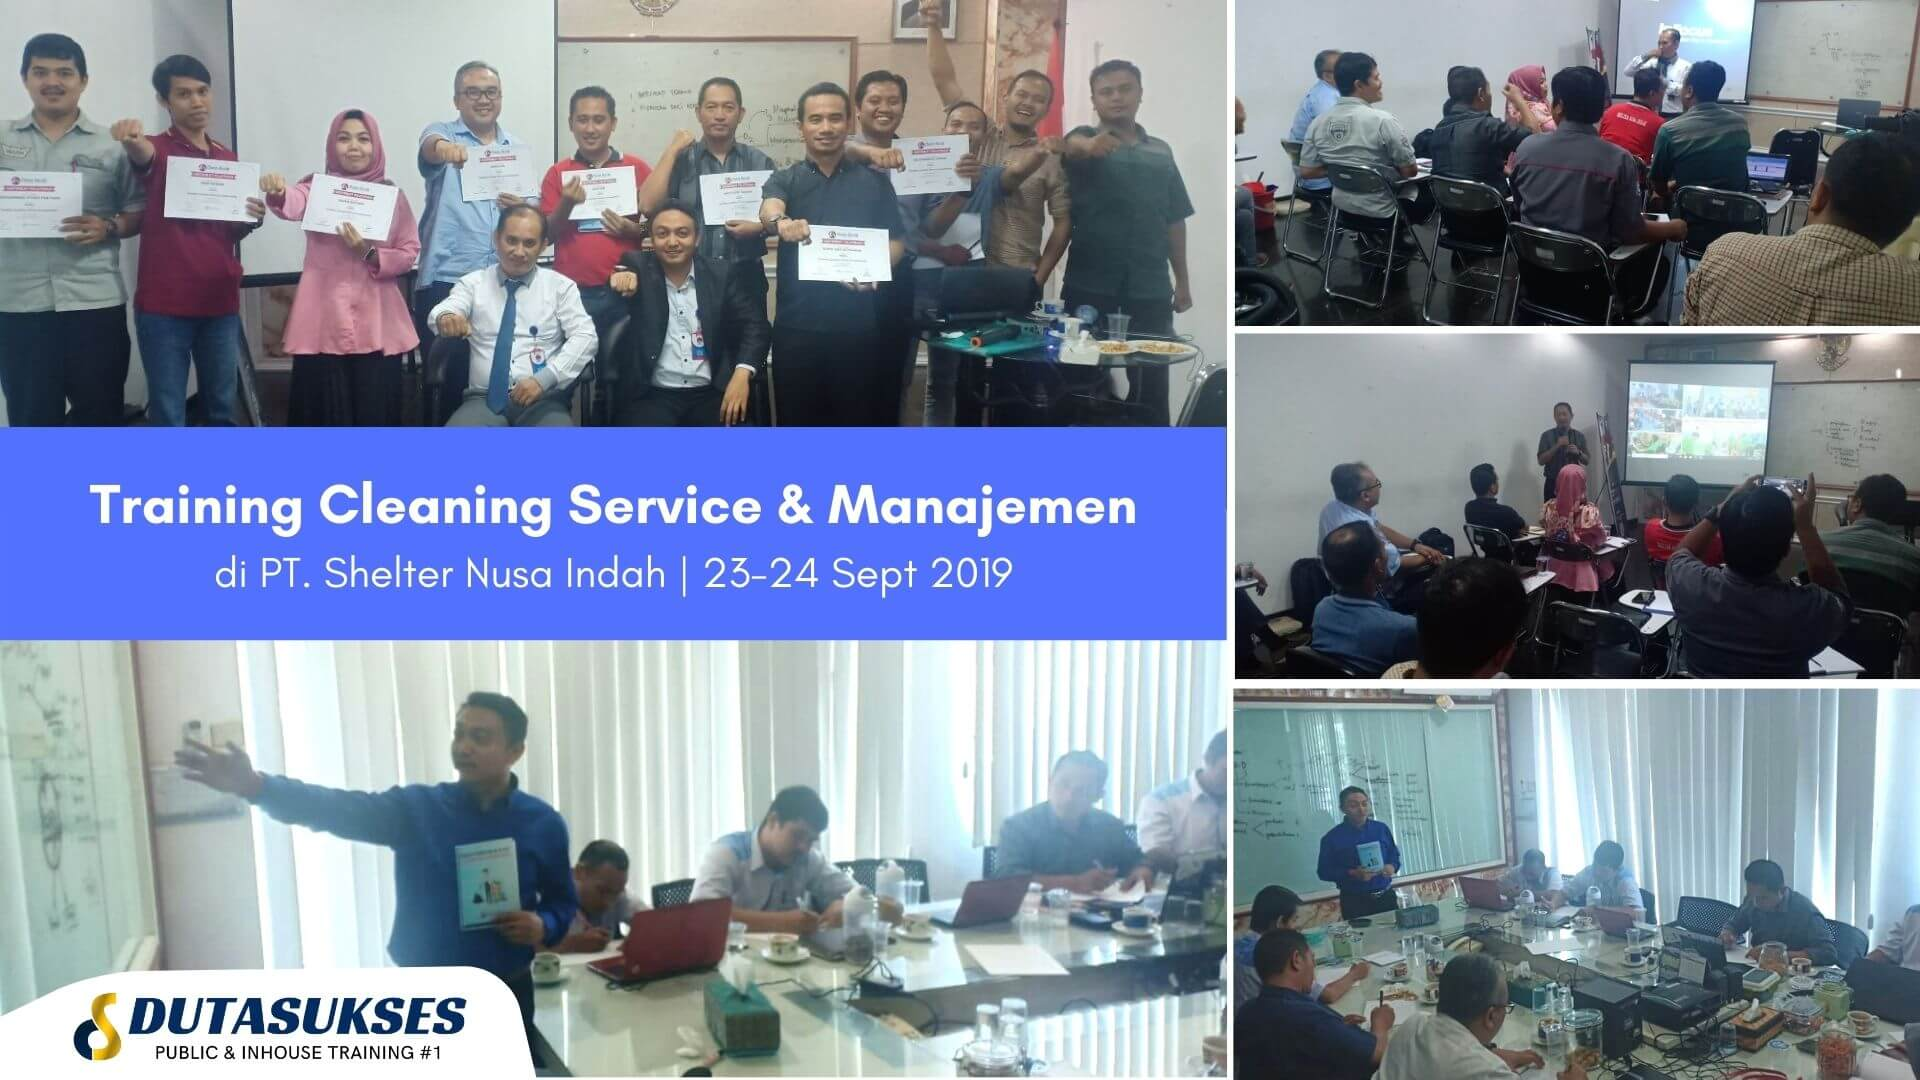 Training Cleaning Service dan Manajement Perusahaan Outsourcing